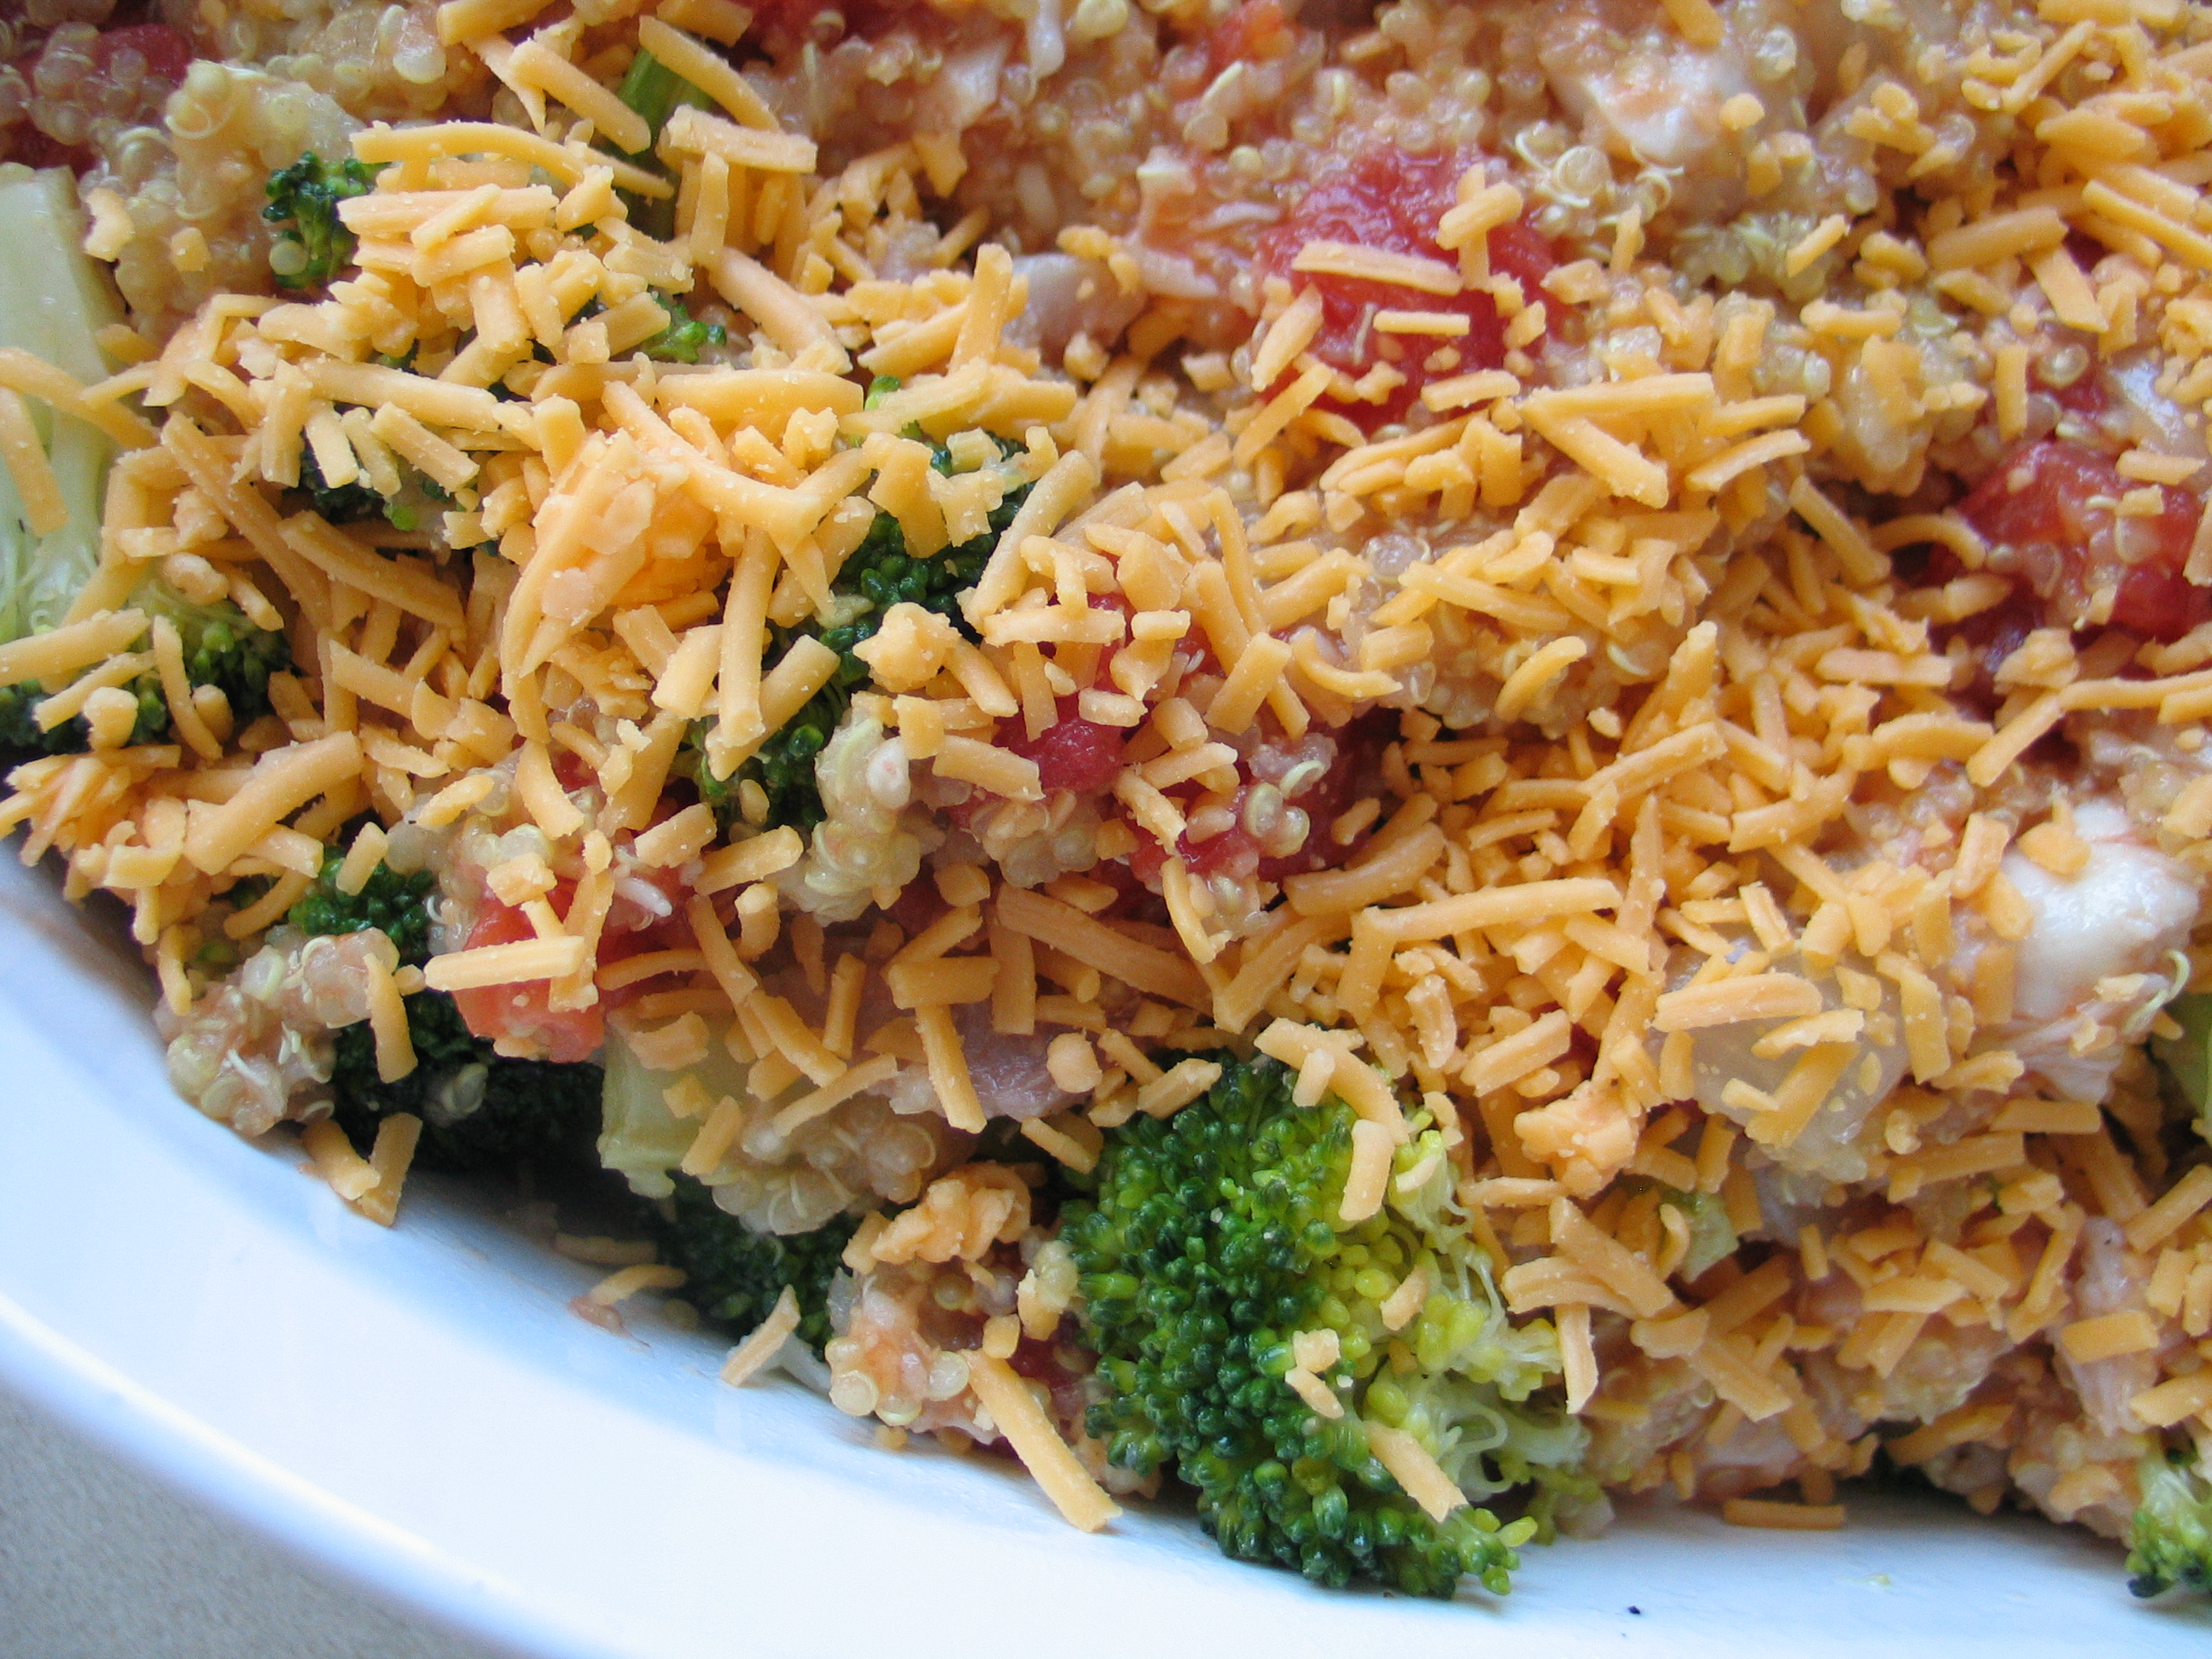 Roasted Broccoli, Chicken and Cheddar Quinoa Bake